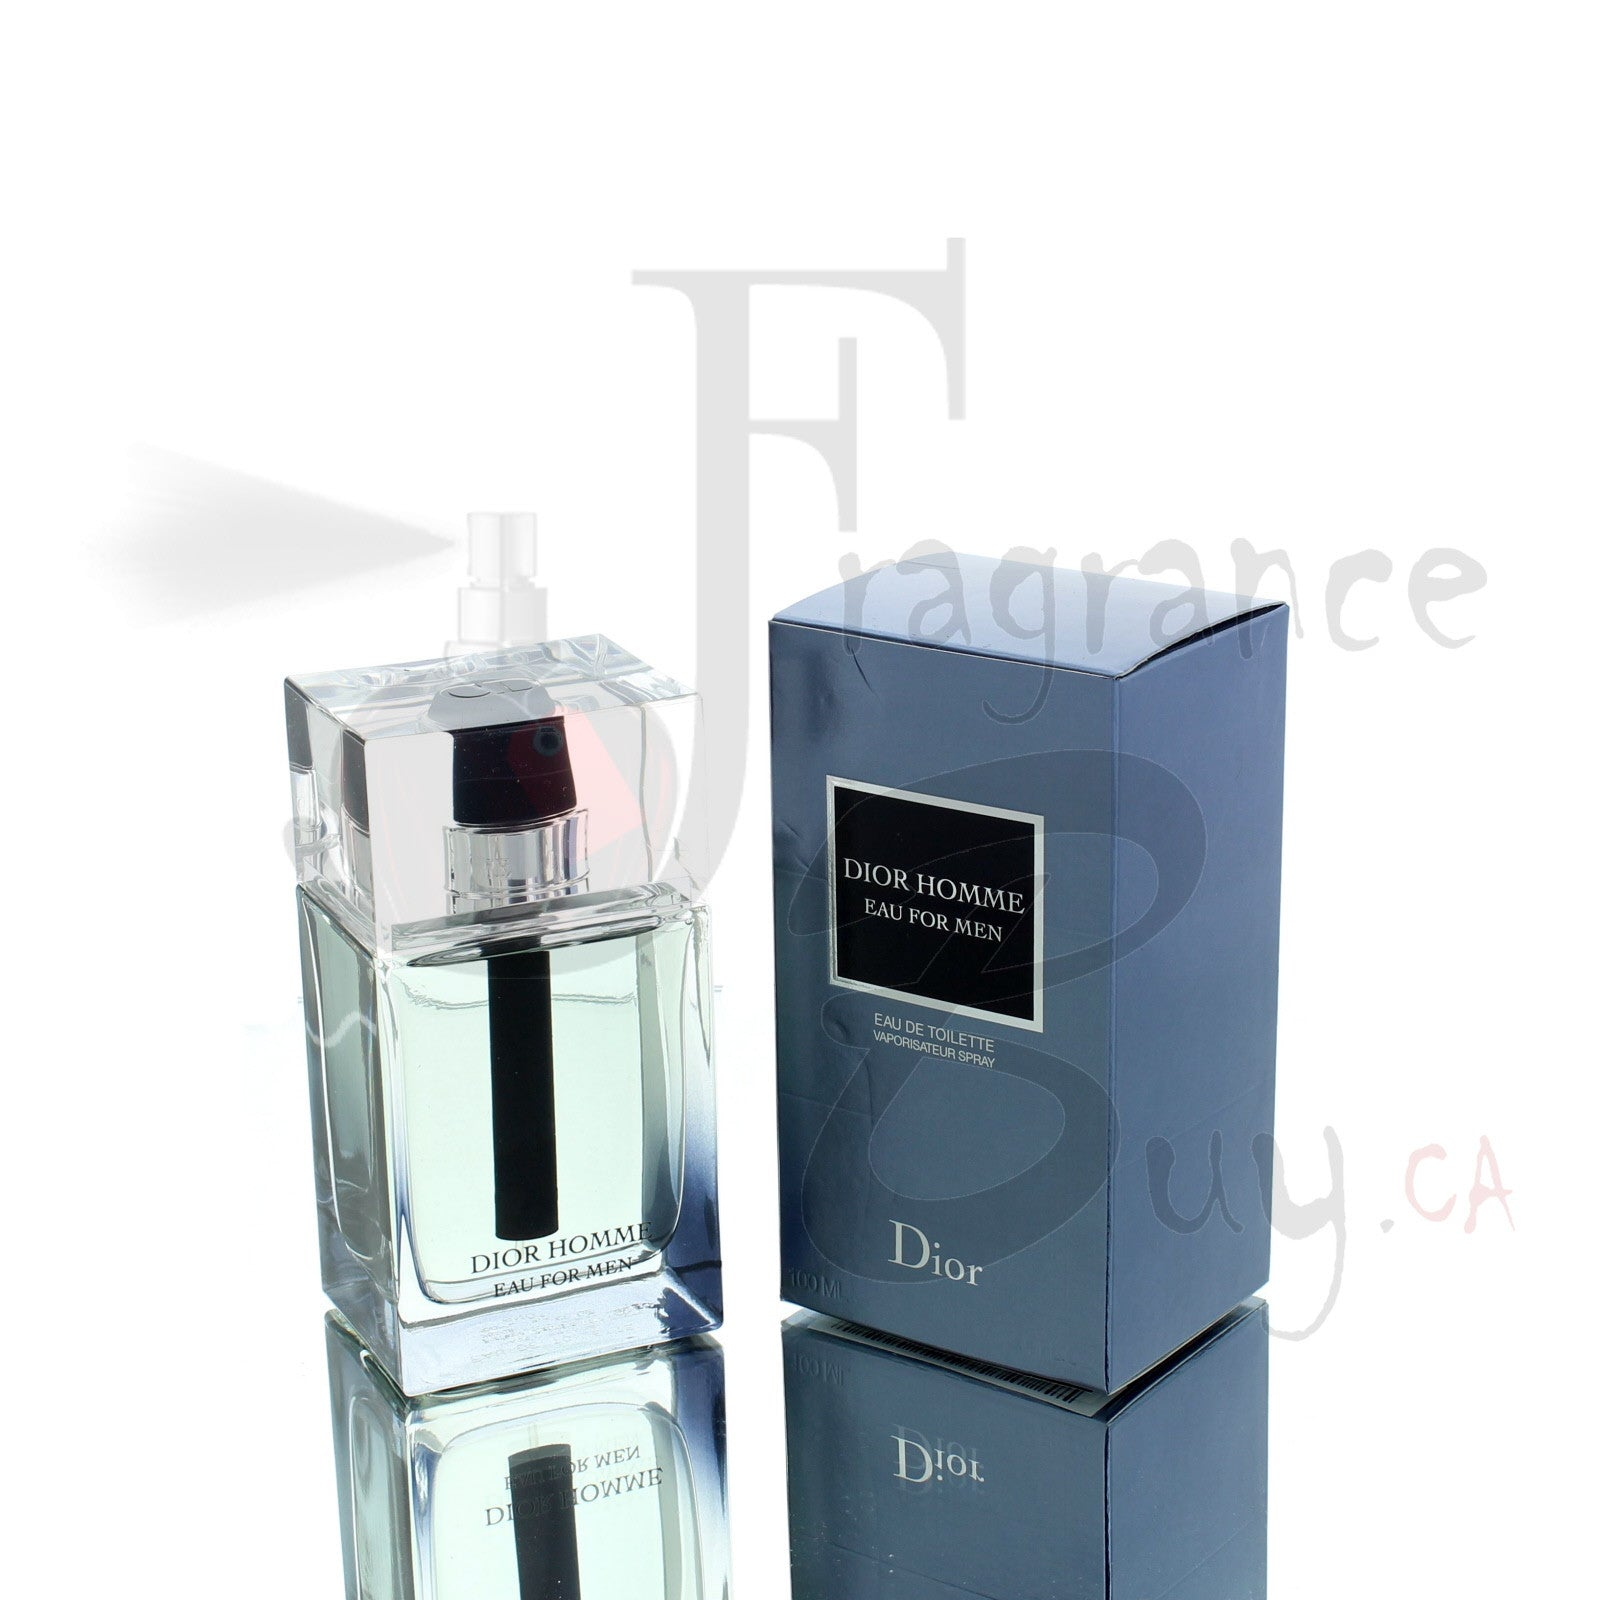 Dior Homme Eau For Man